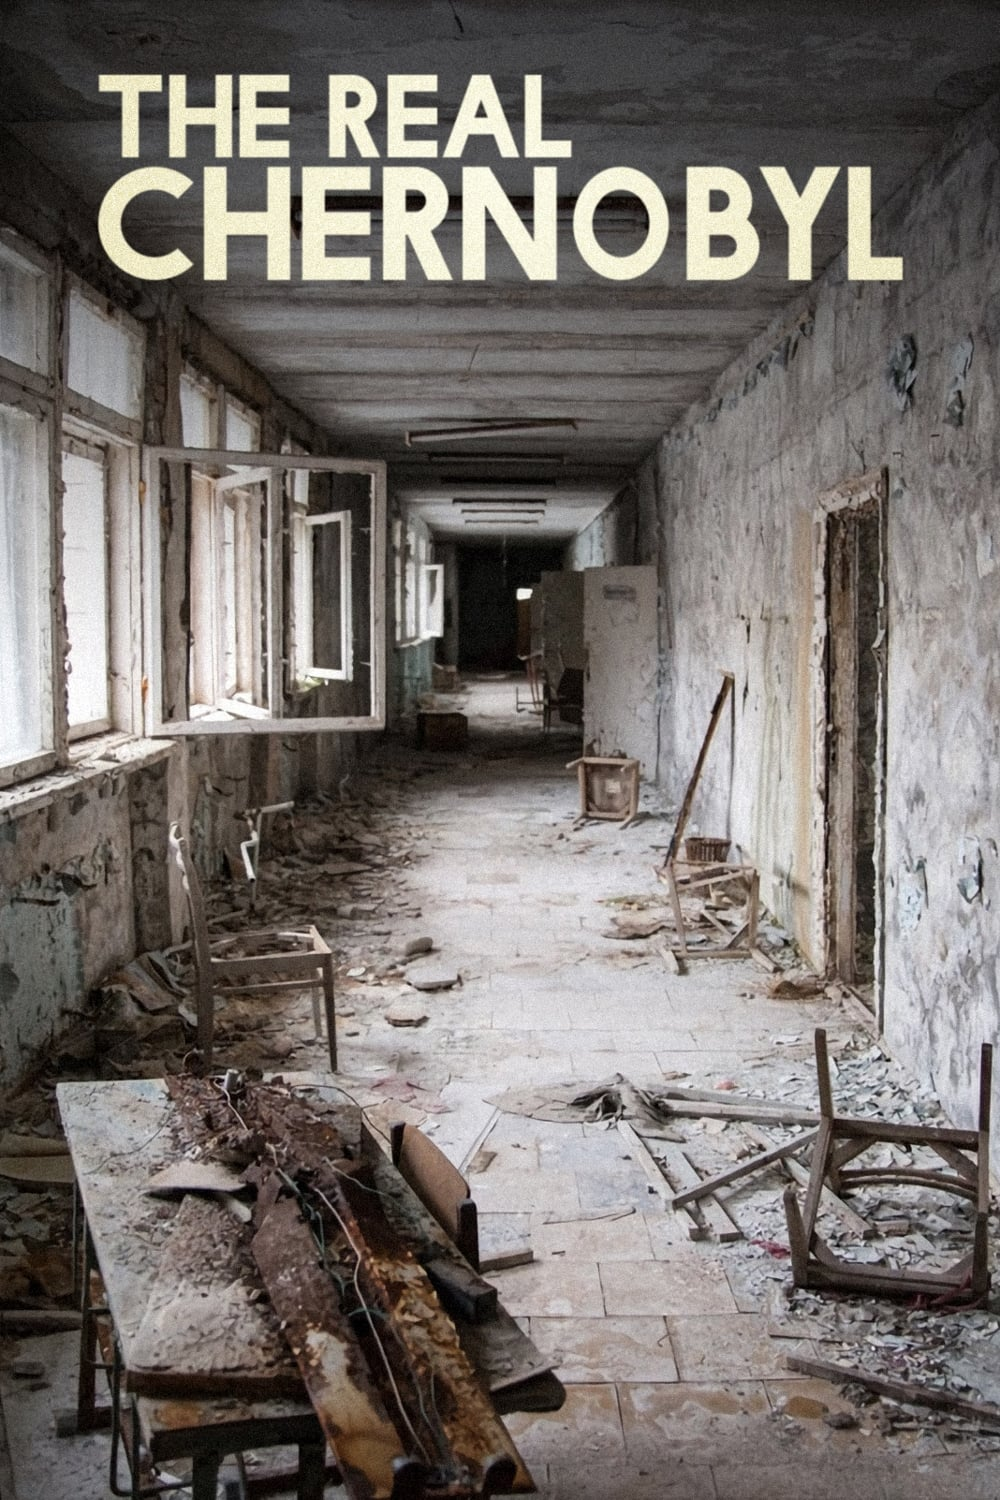 The Real Chernobyl (2019)